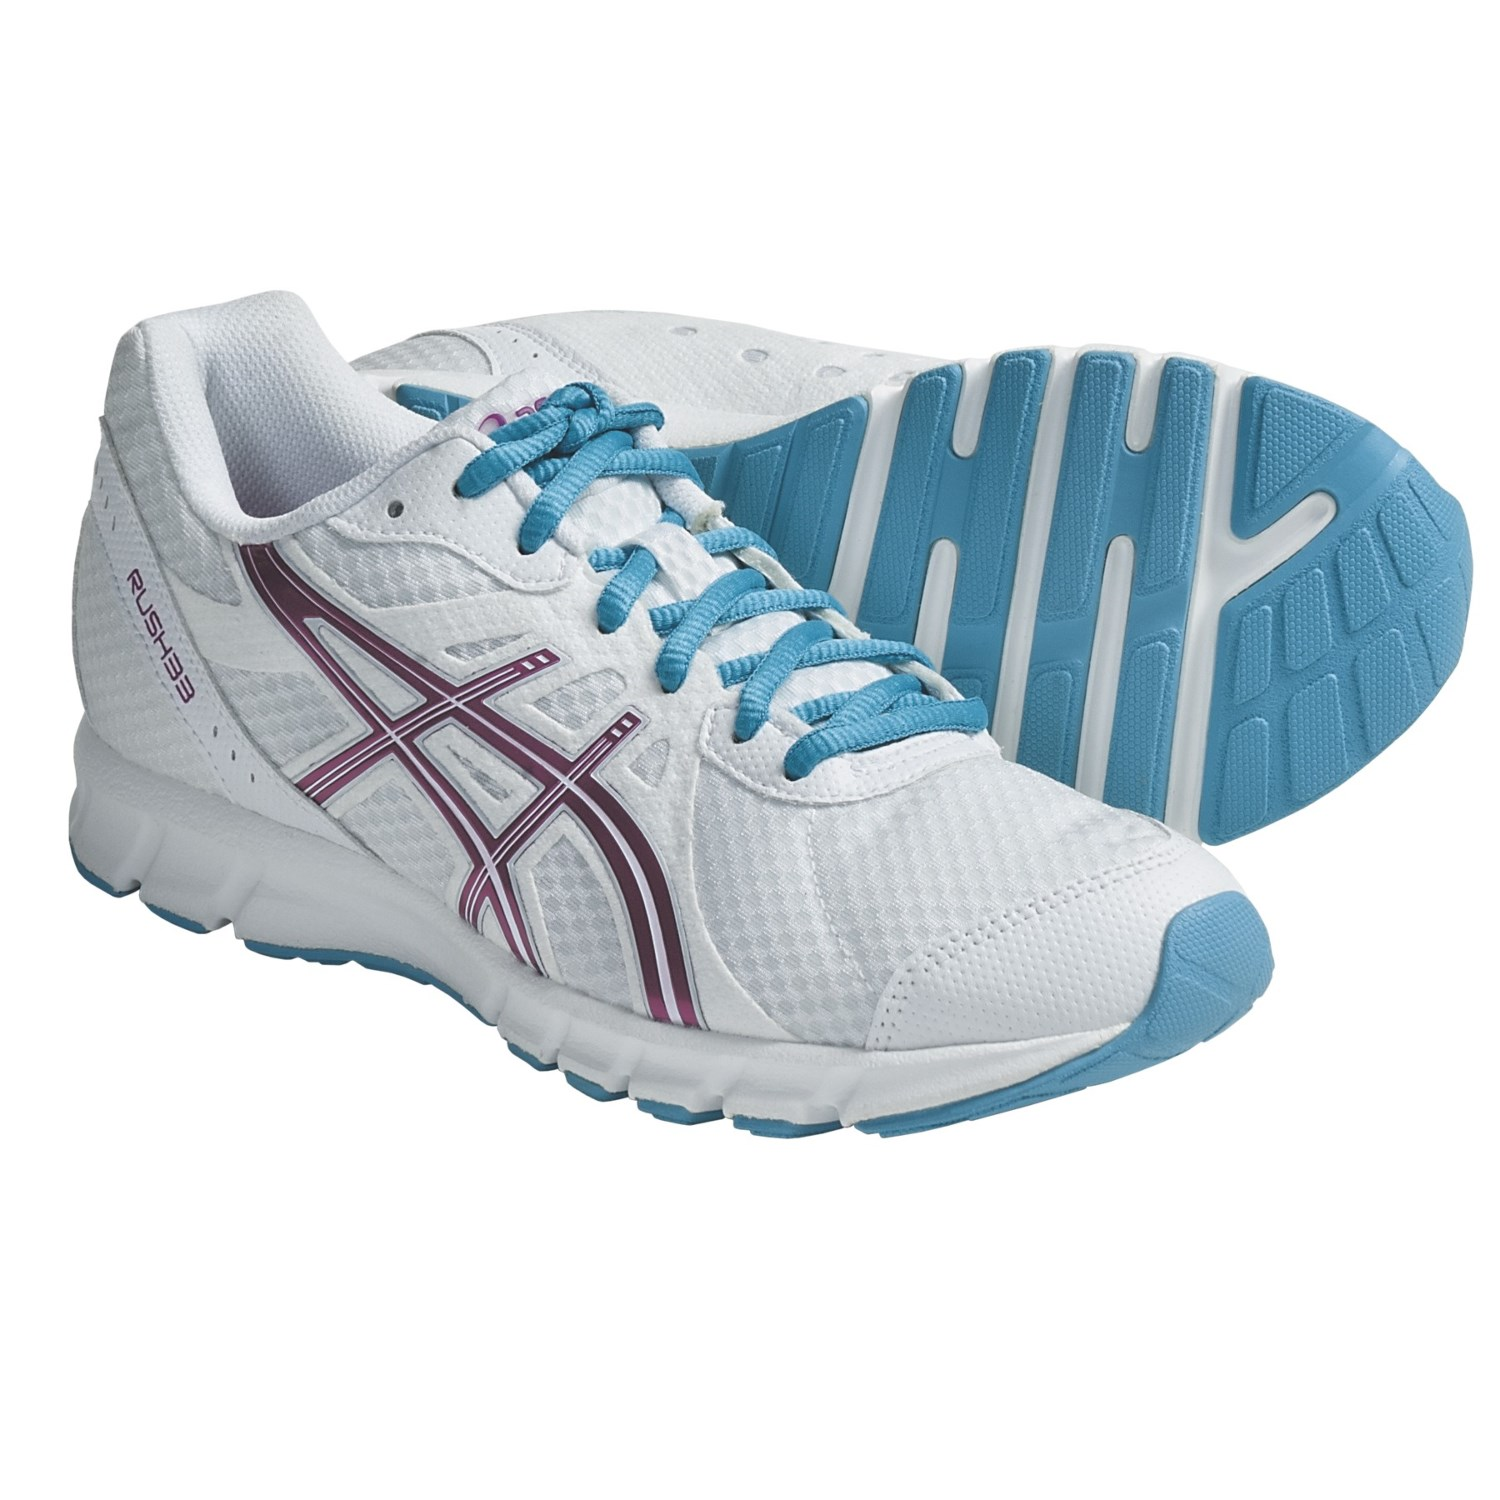 Asics Running Shoes For Women With High Arches